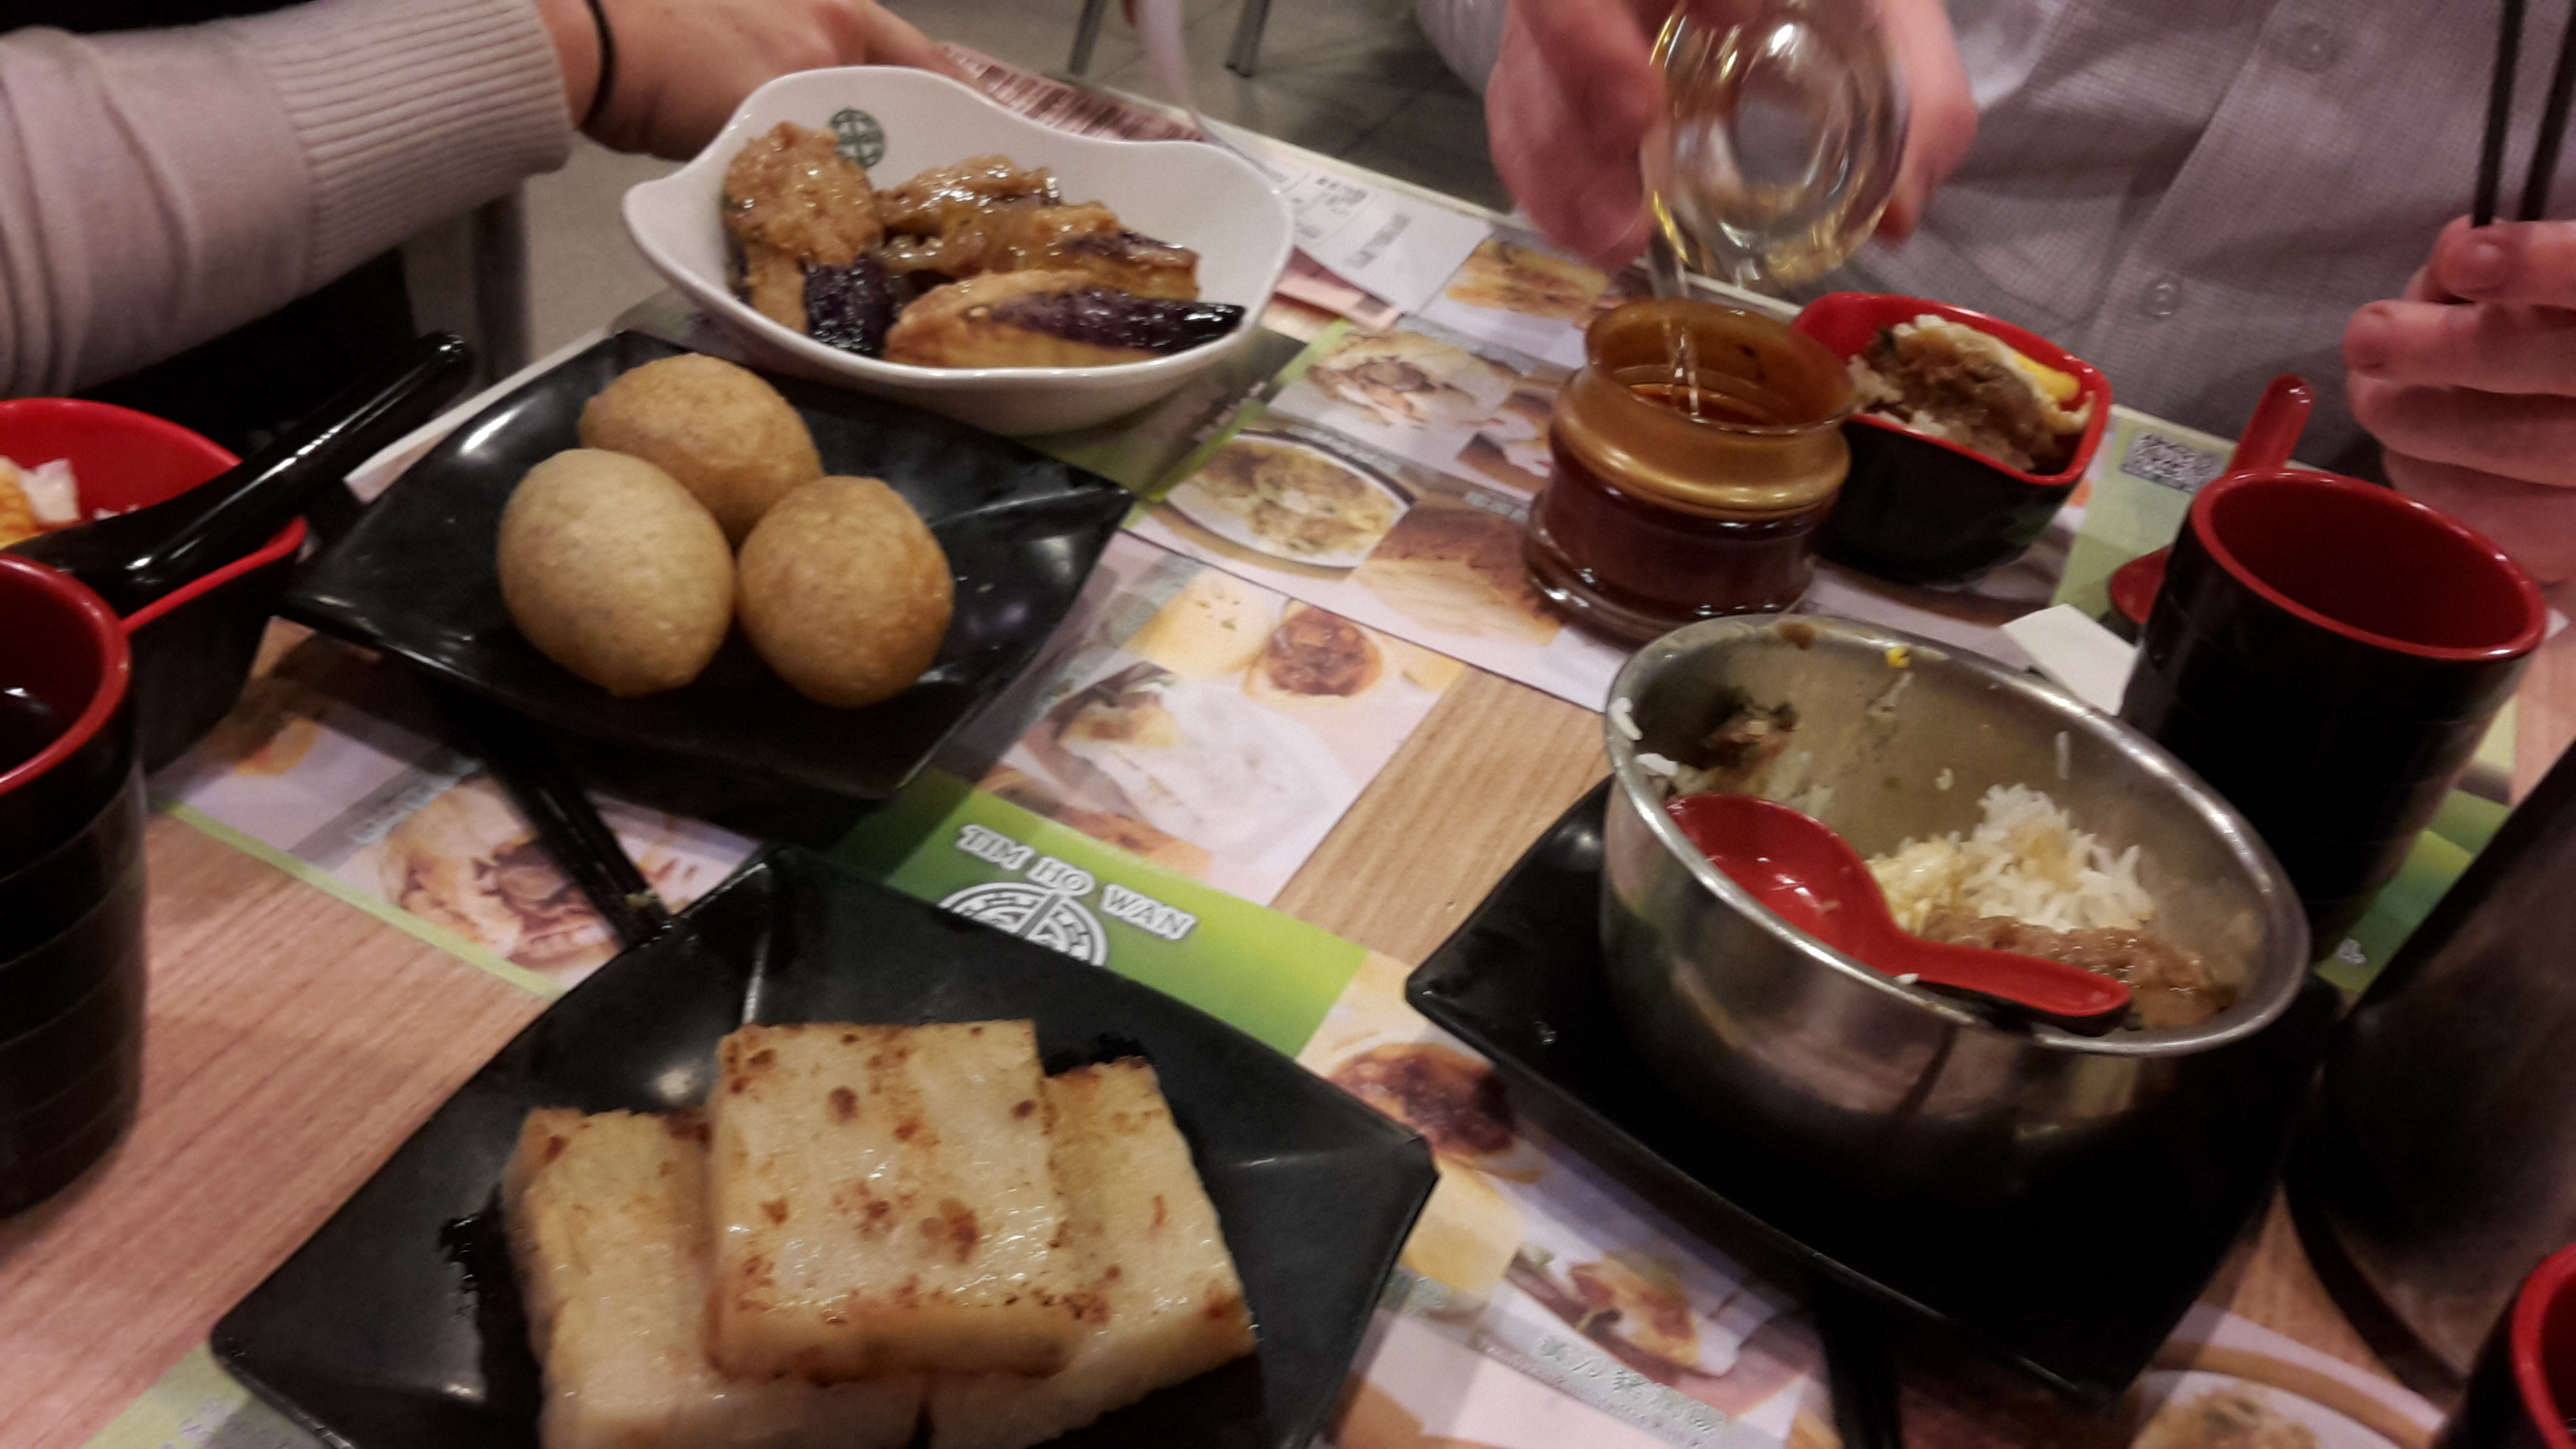 Spread at Hong Kong's Tim Ho Wan, at the time the cheapest Michelin-starred restaurant in the world